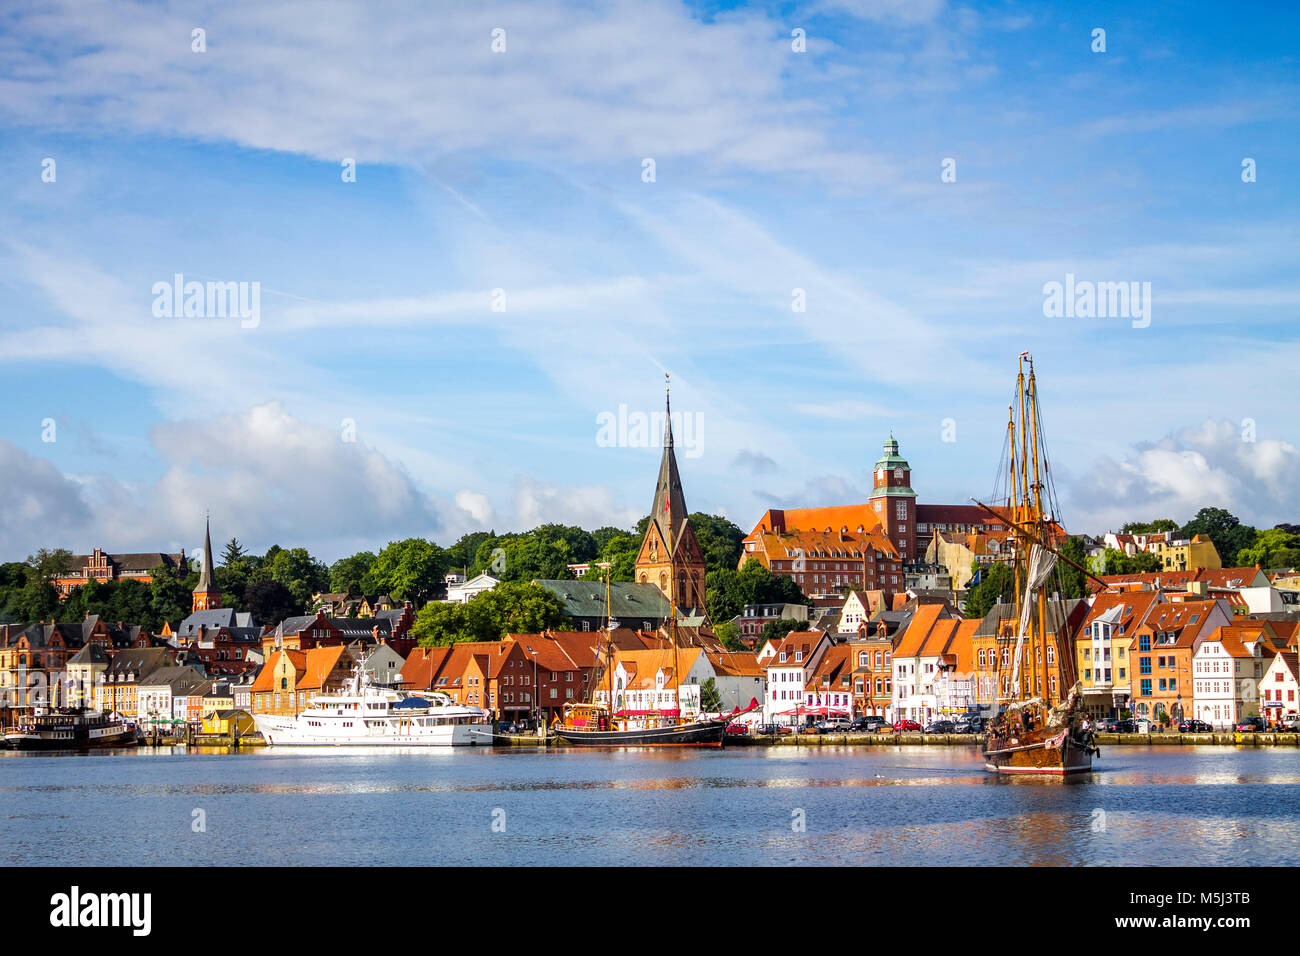 Germany, Schleswig-Holstein, Flensburg, city view and harbour - Stock Image